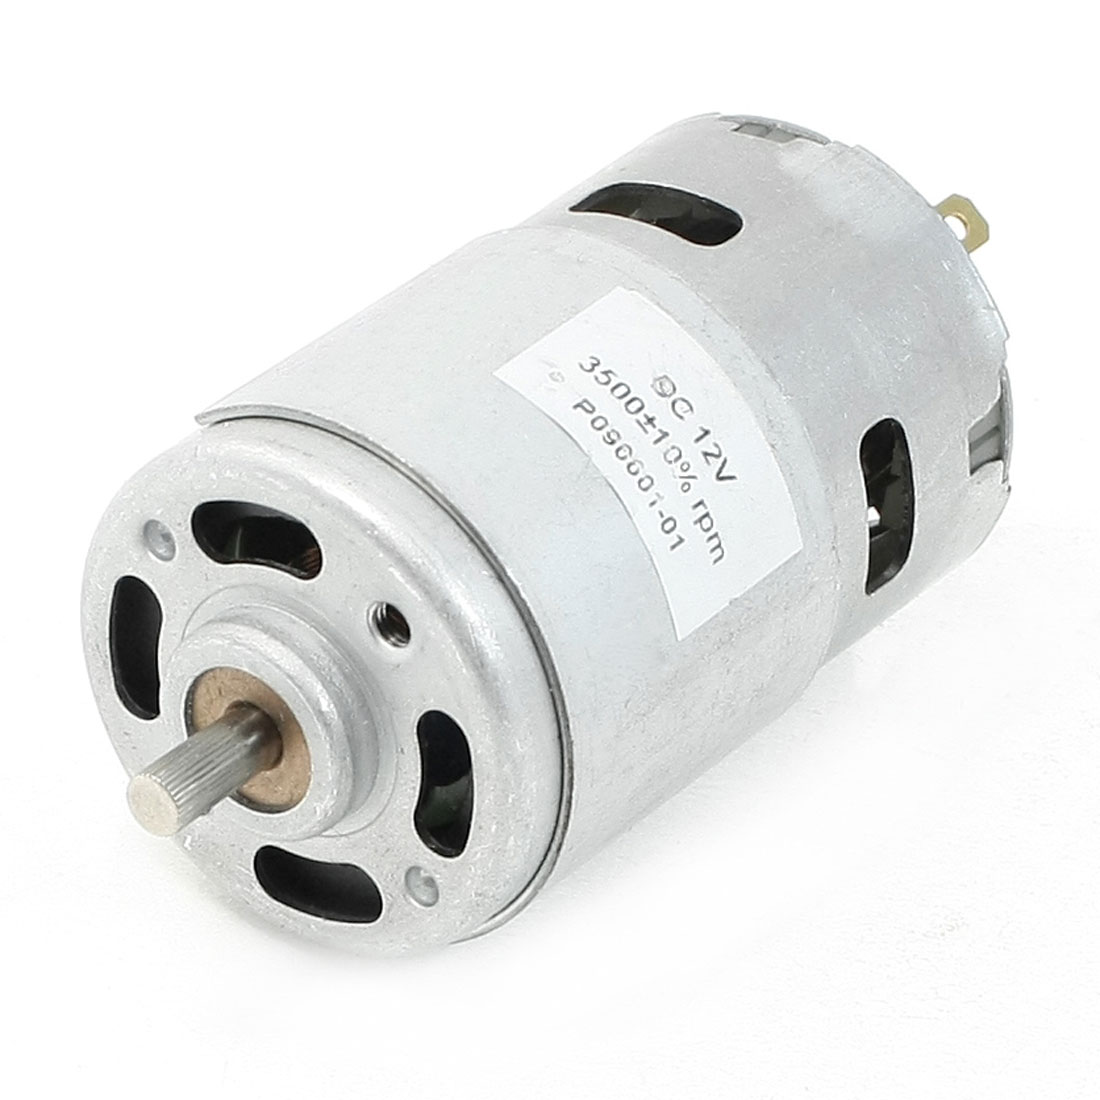 12V 0.5A 3500RPM 2 Terminals Connector Cylindrical Permanent Magnet DC Motor